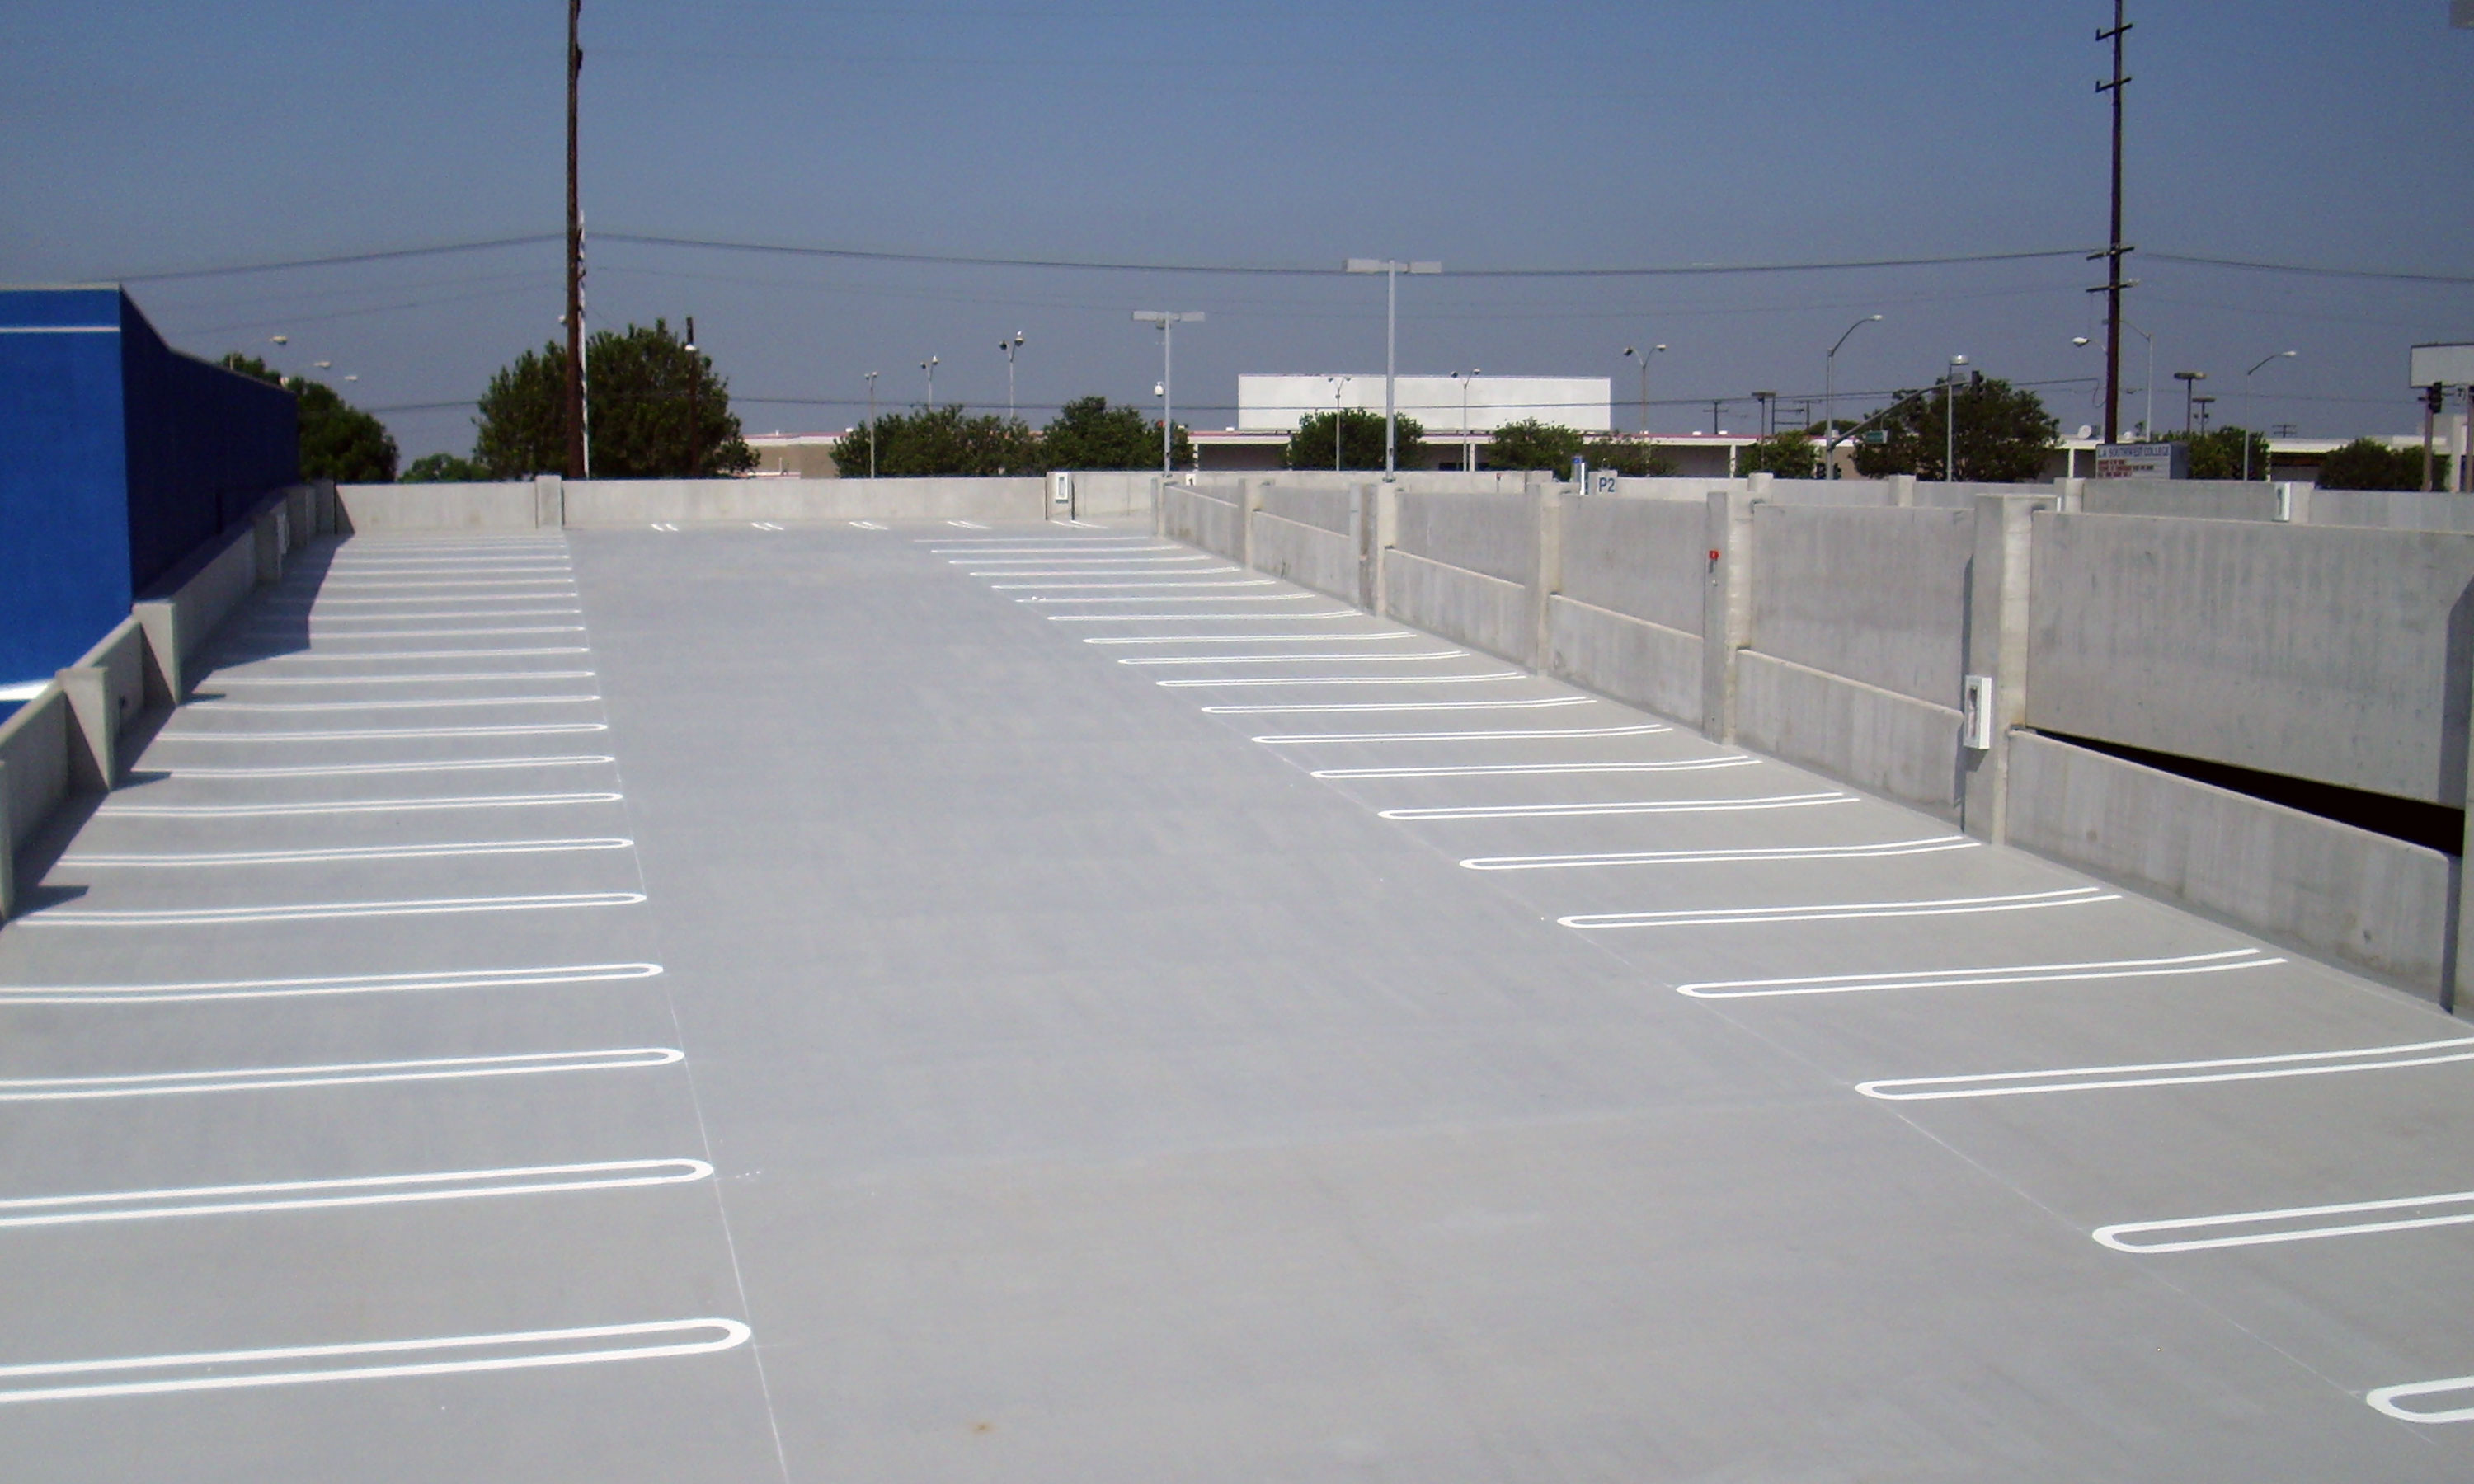 Traffic_Deck_Parking_1